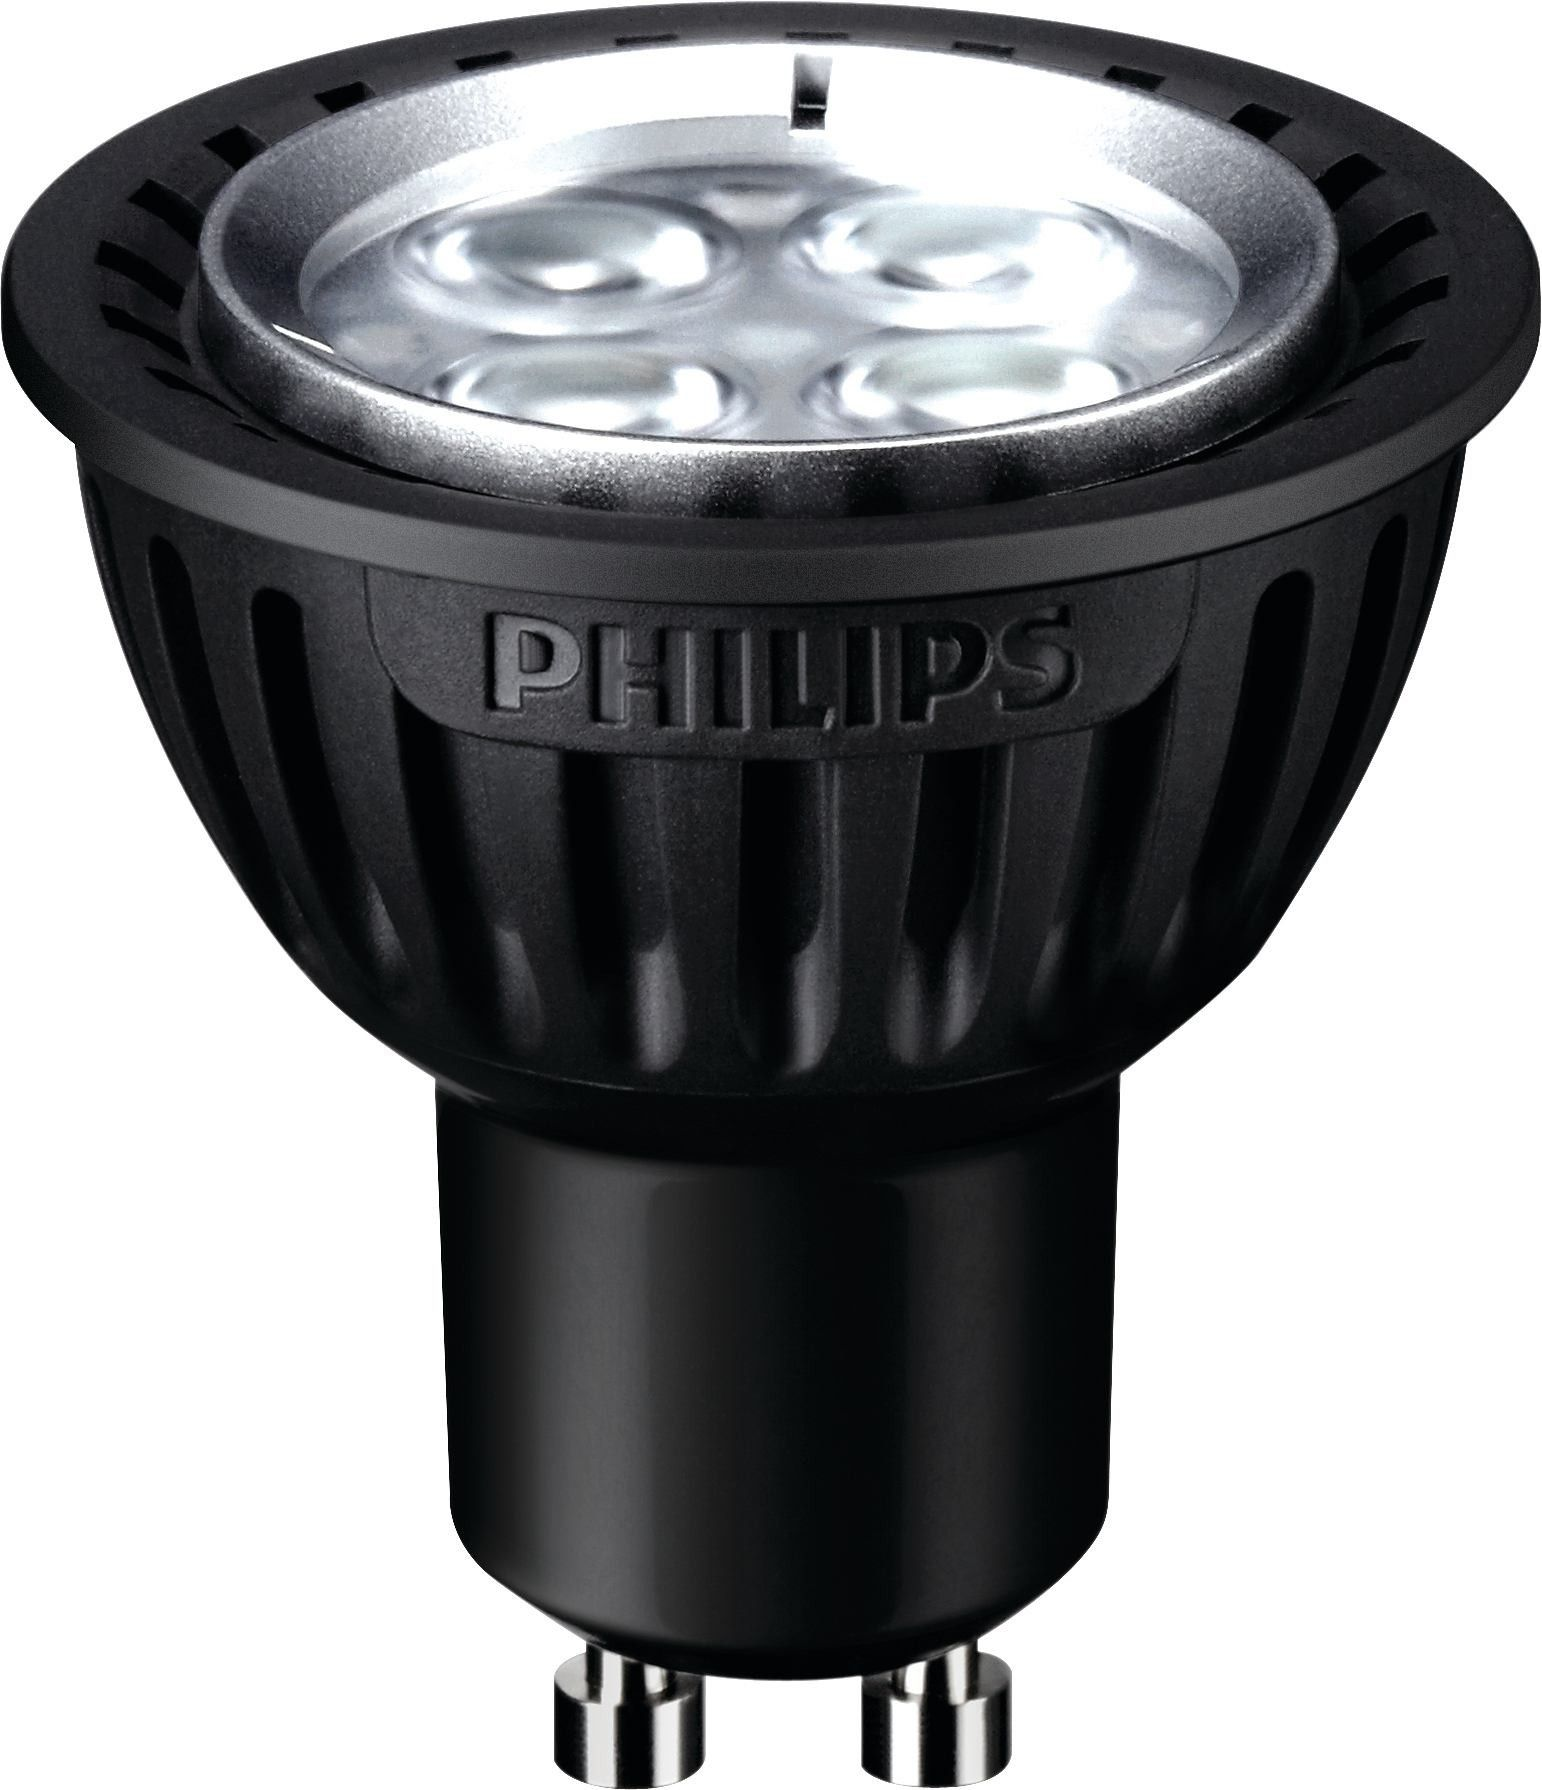 LED GU10 Light up Your Home with Quality LED Lighting